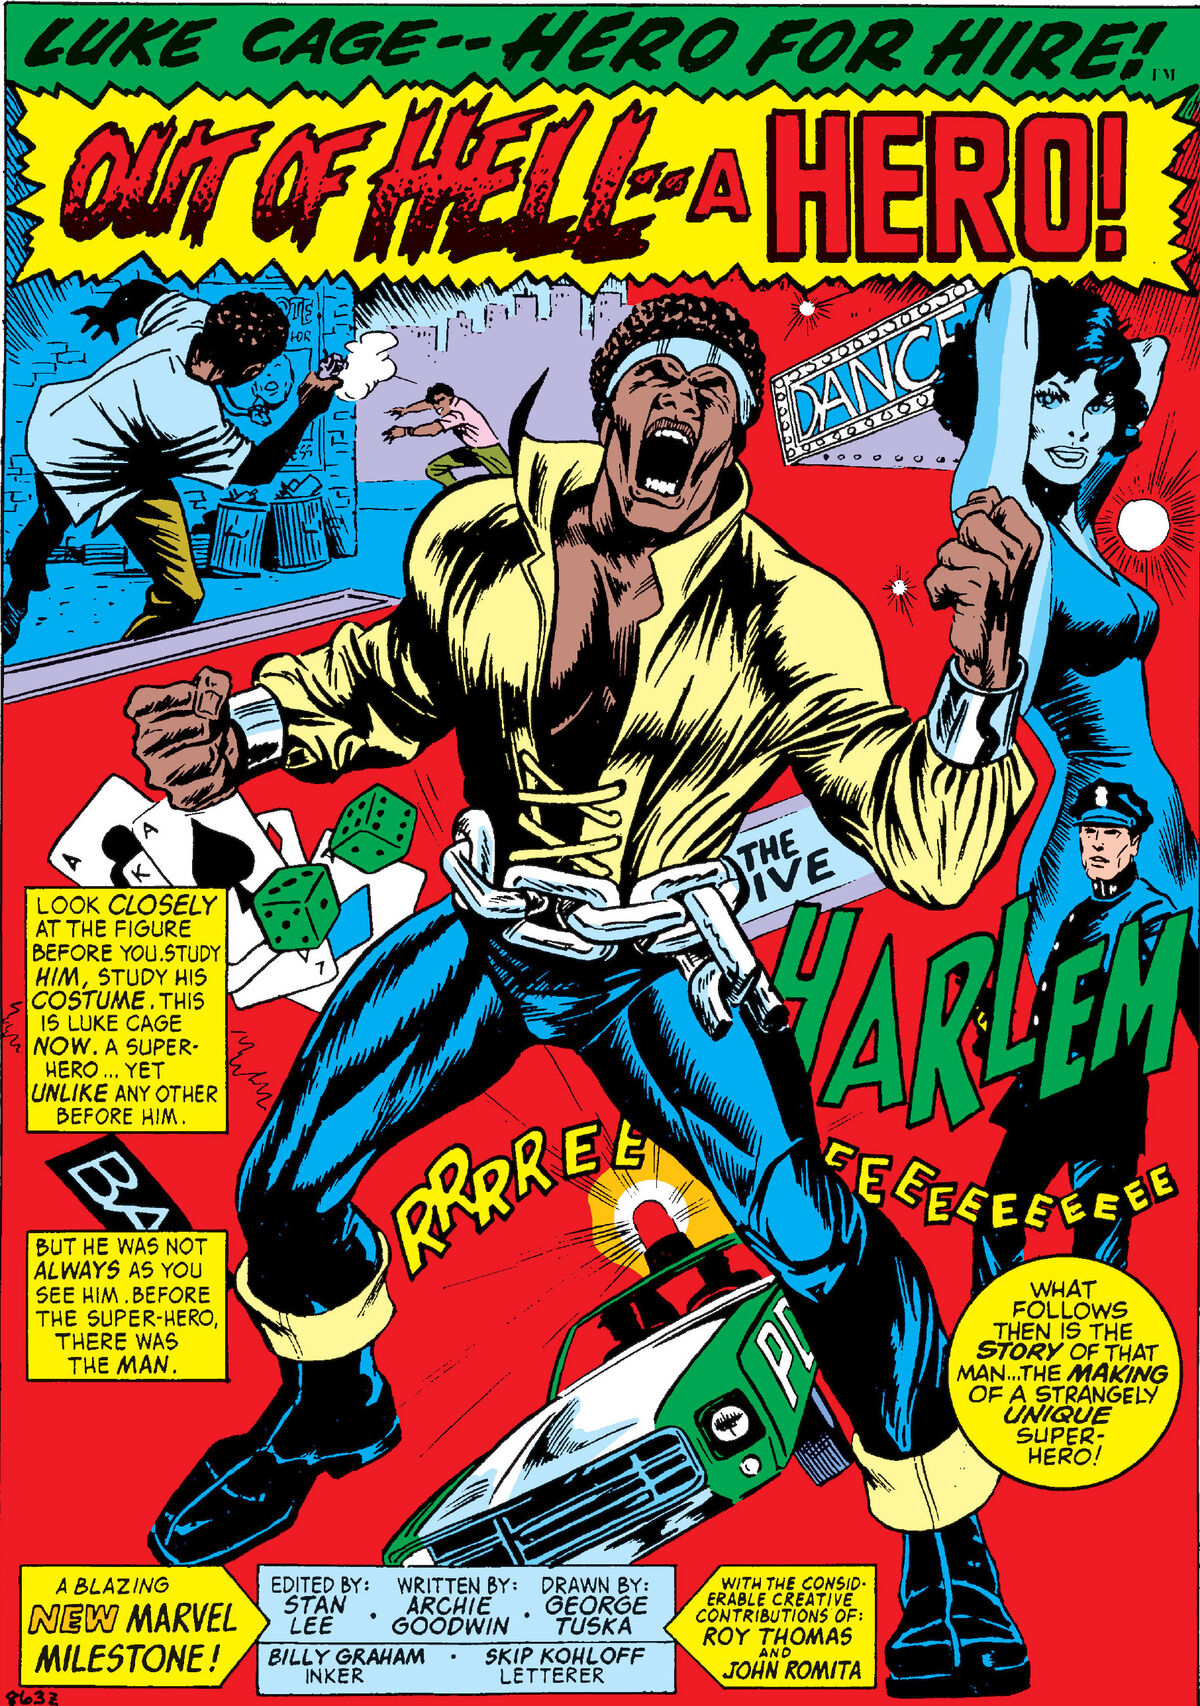 Angry Luke Cage, shirt ripping off him, broken chains around waist, sexy girl, cop car, dice and a hoodlum shootout in the background